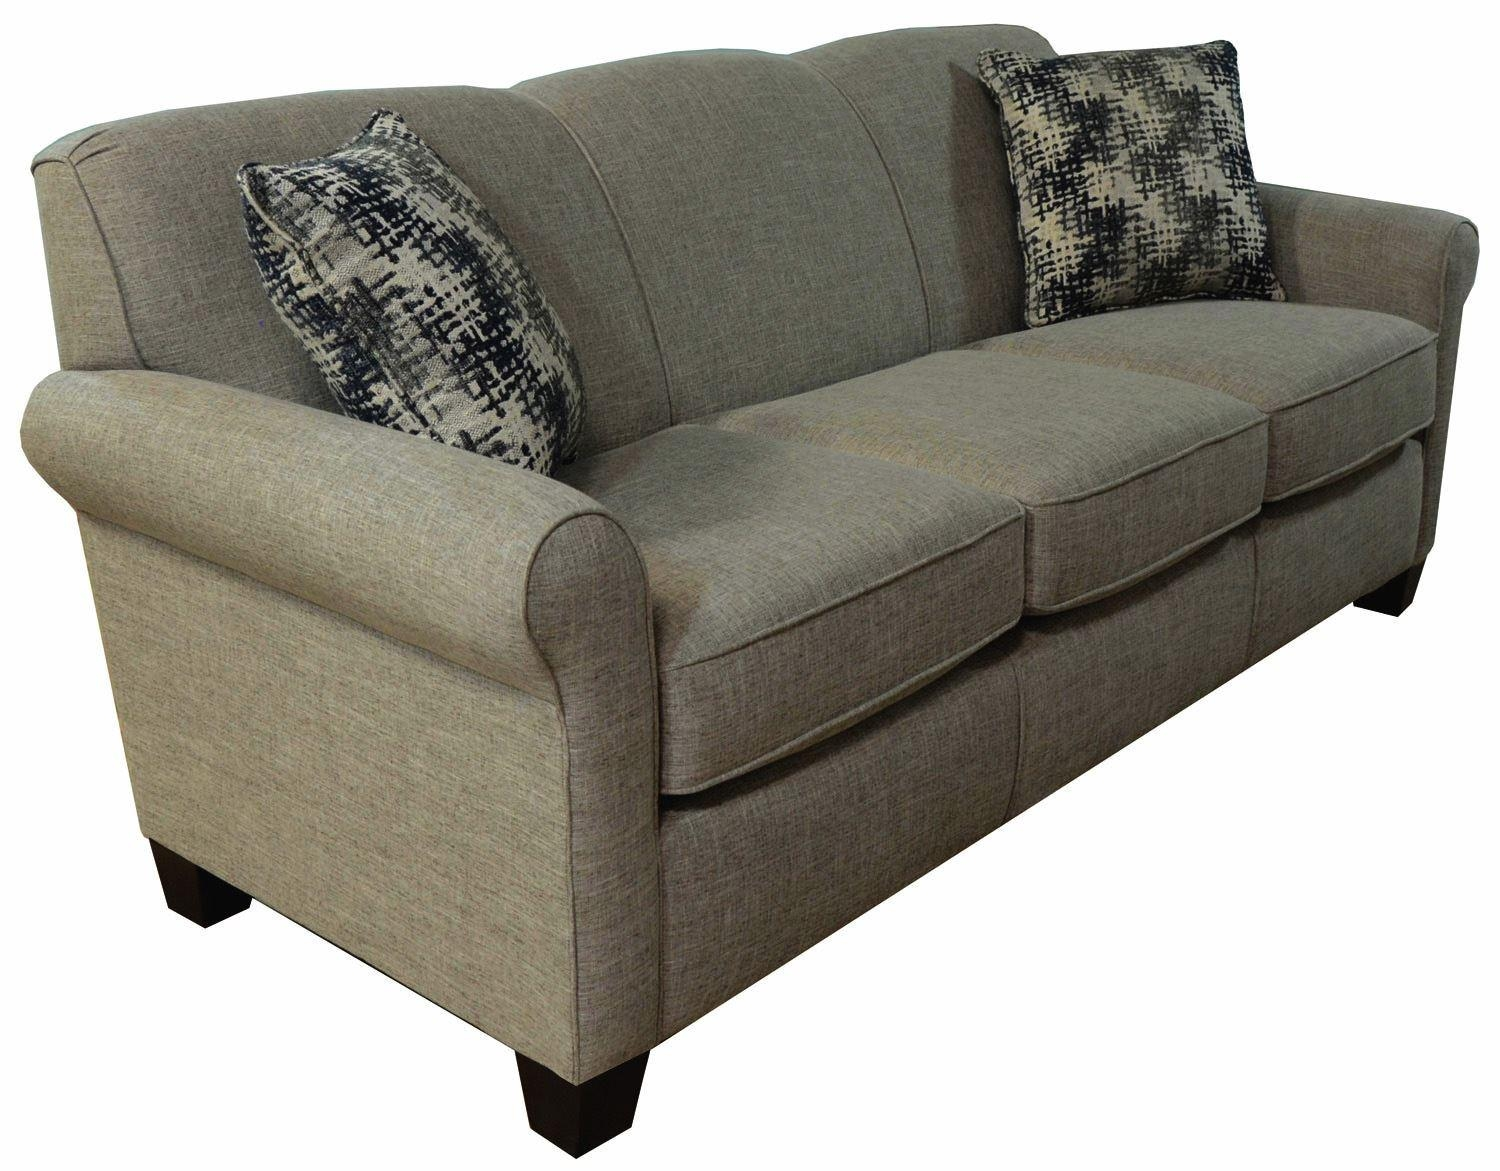 Newport Sofa, Frontroom Express - Frontroom Furnishings regarding Newport Sofas